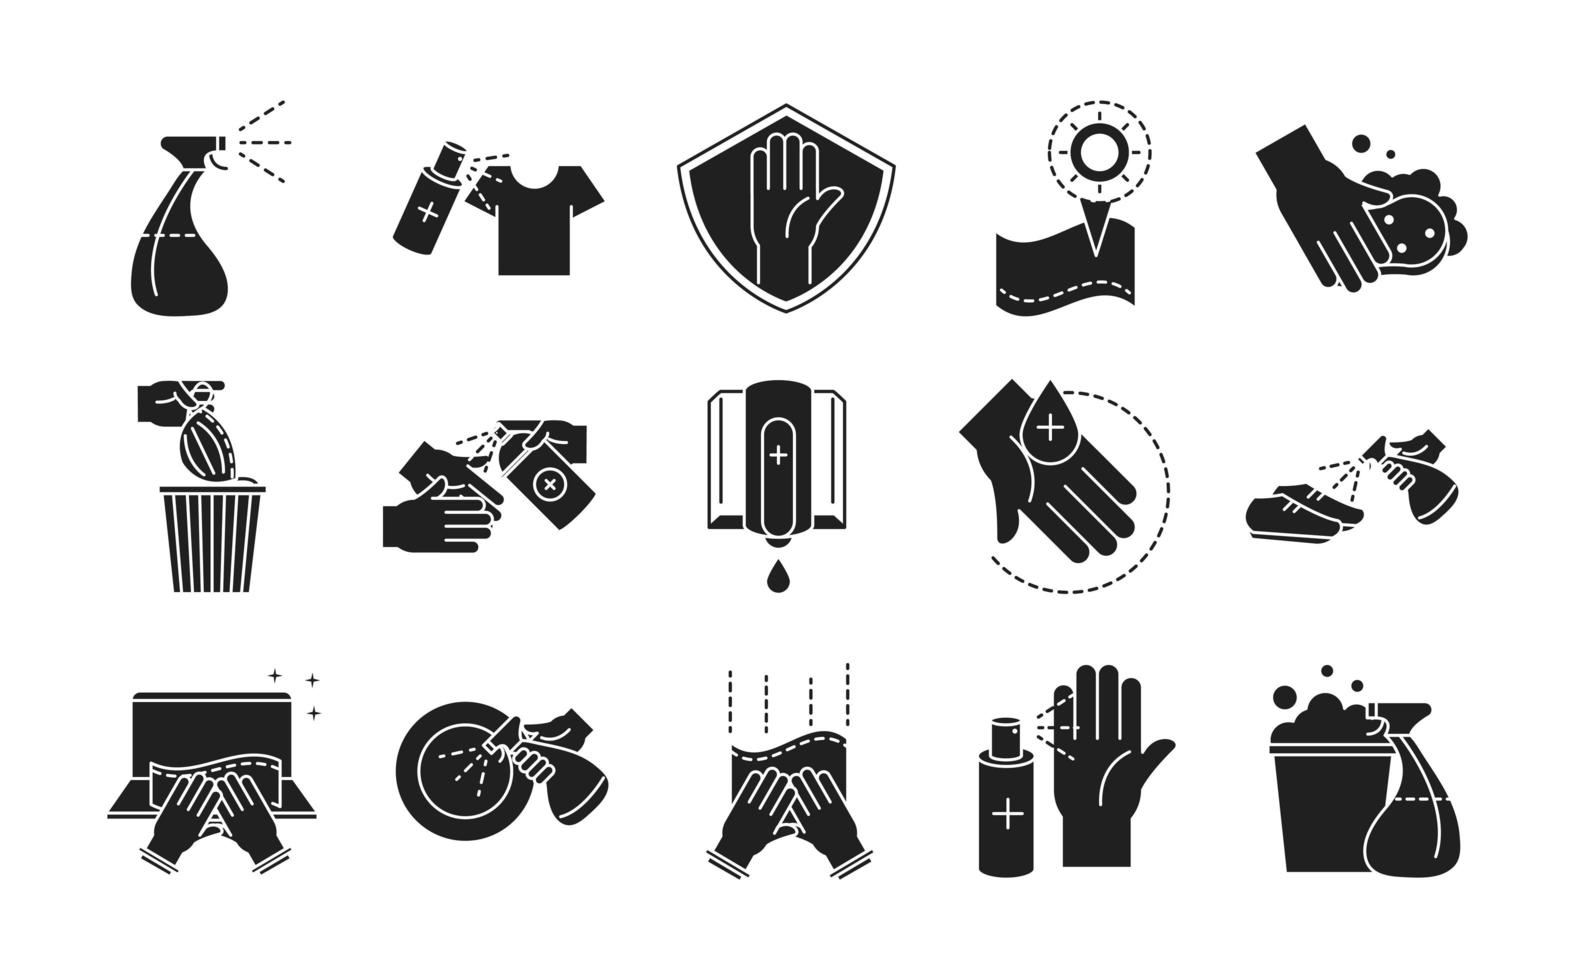 Prevention and disinfection silhouette-style icon set vector